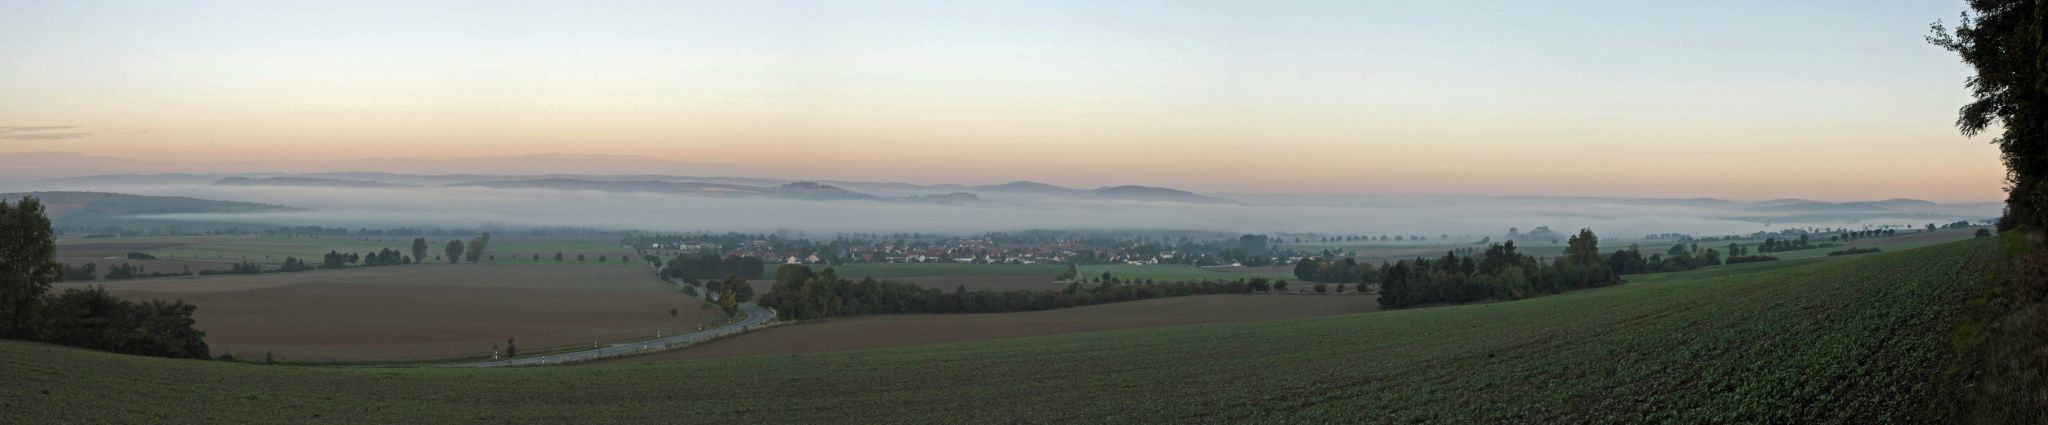 View of the Leinetal, Germany